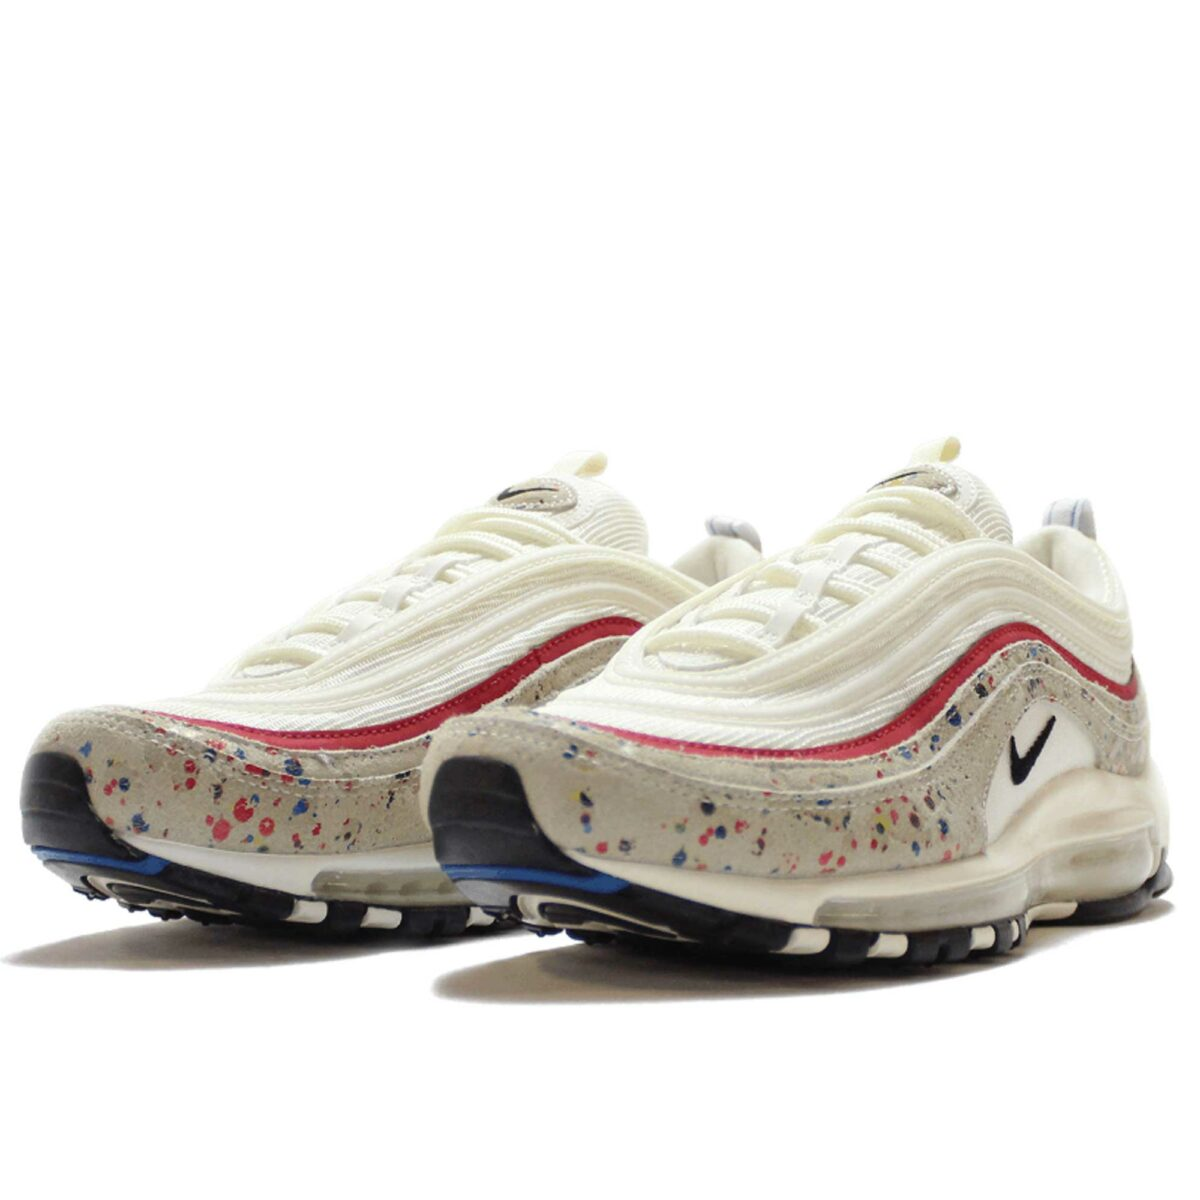 nike air max 97 ultra premium paint splatter 312834_102 купить